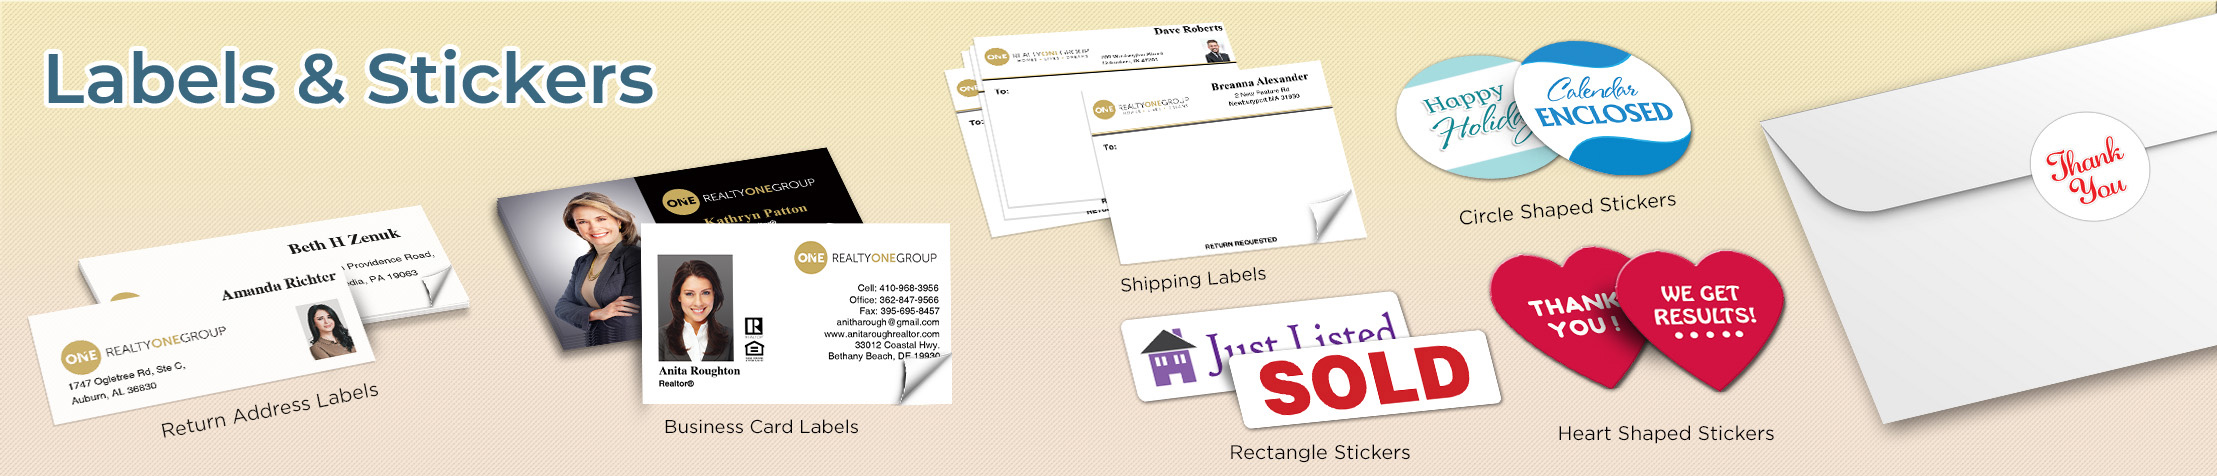 Realty One Group Real Estate Labels and Stickers - Realty One Group  business card labels, return address labels, shipping labels, and assorted stickers | BestPrintBuy.com